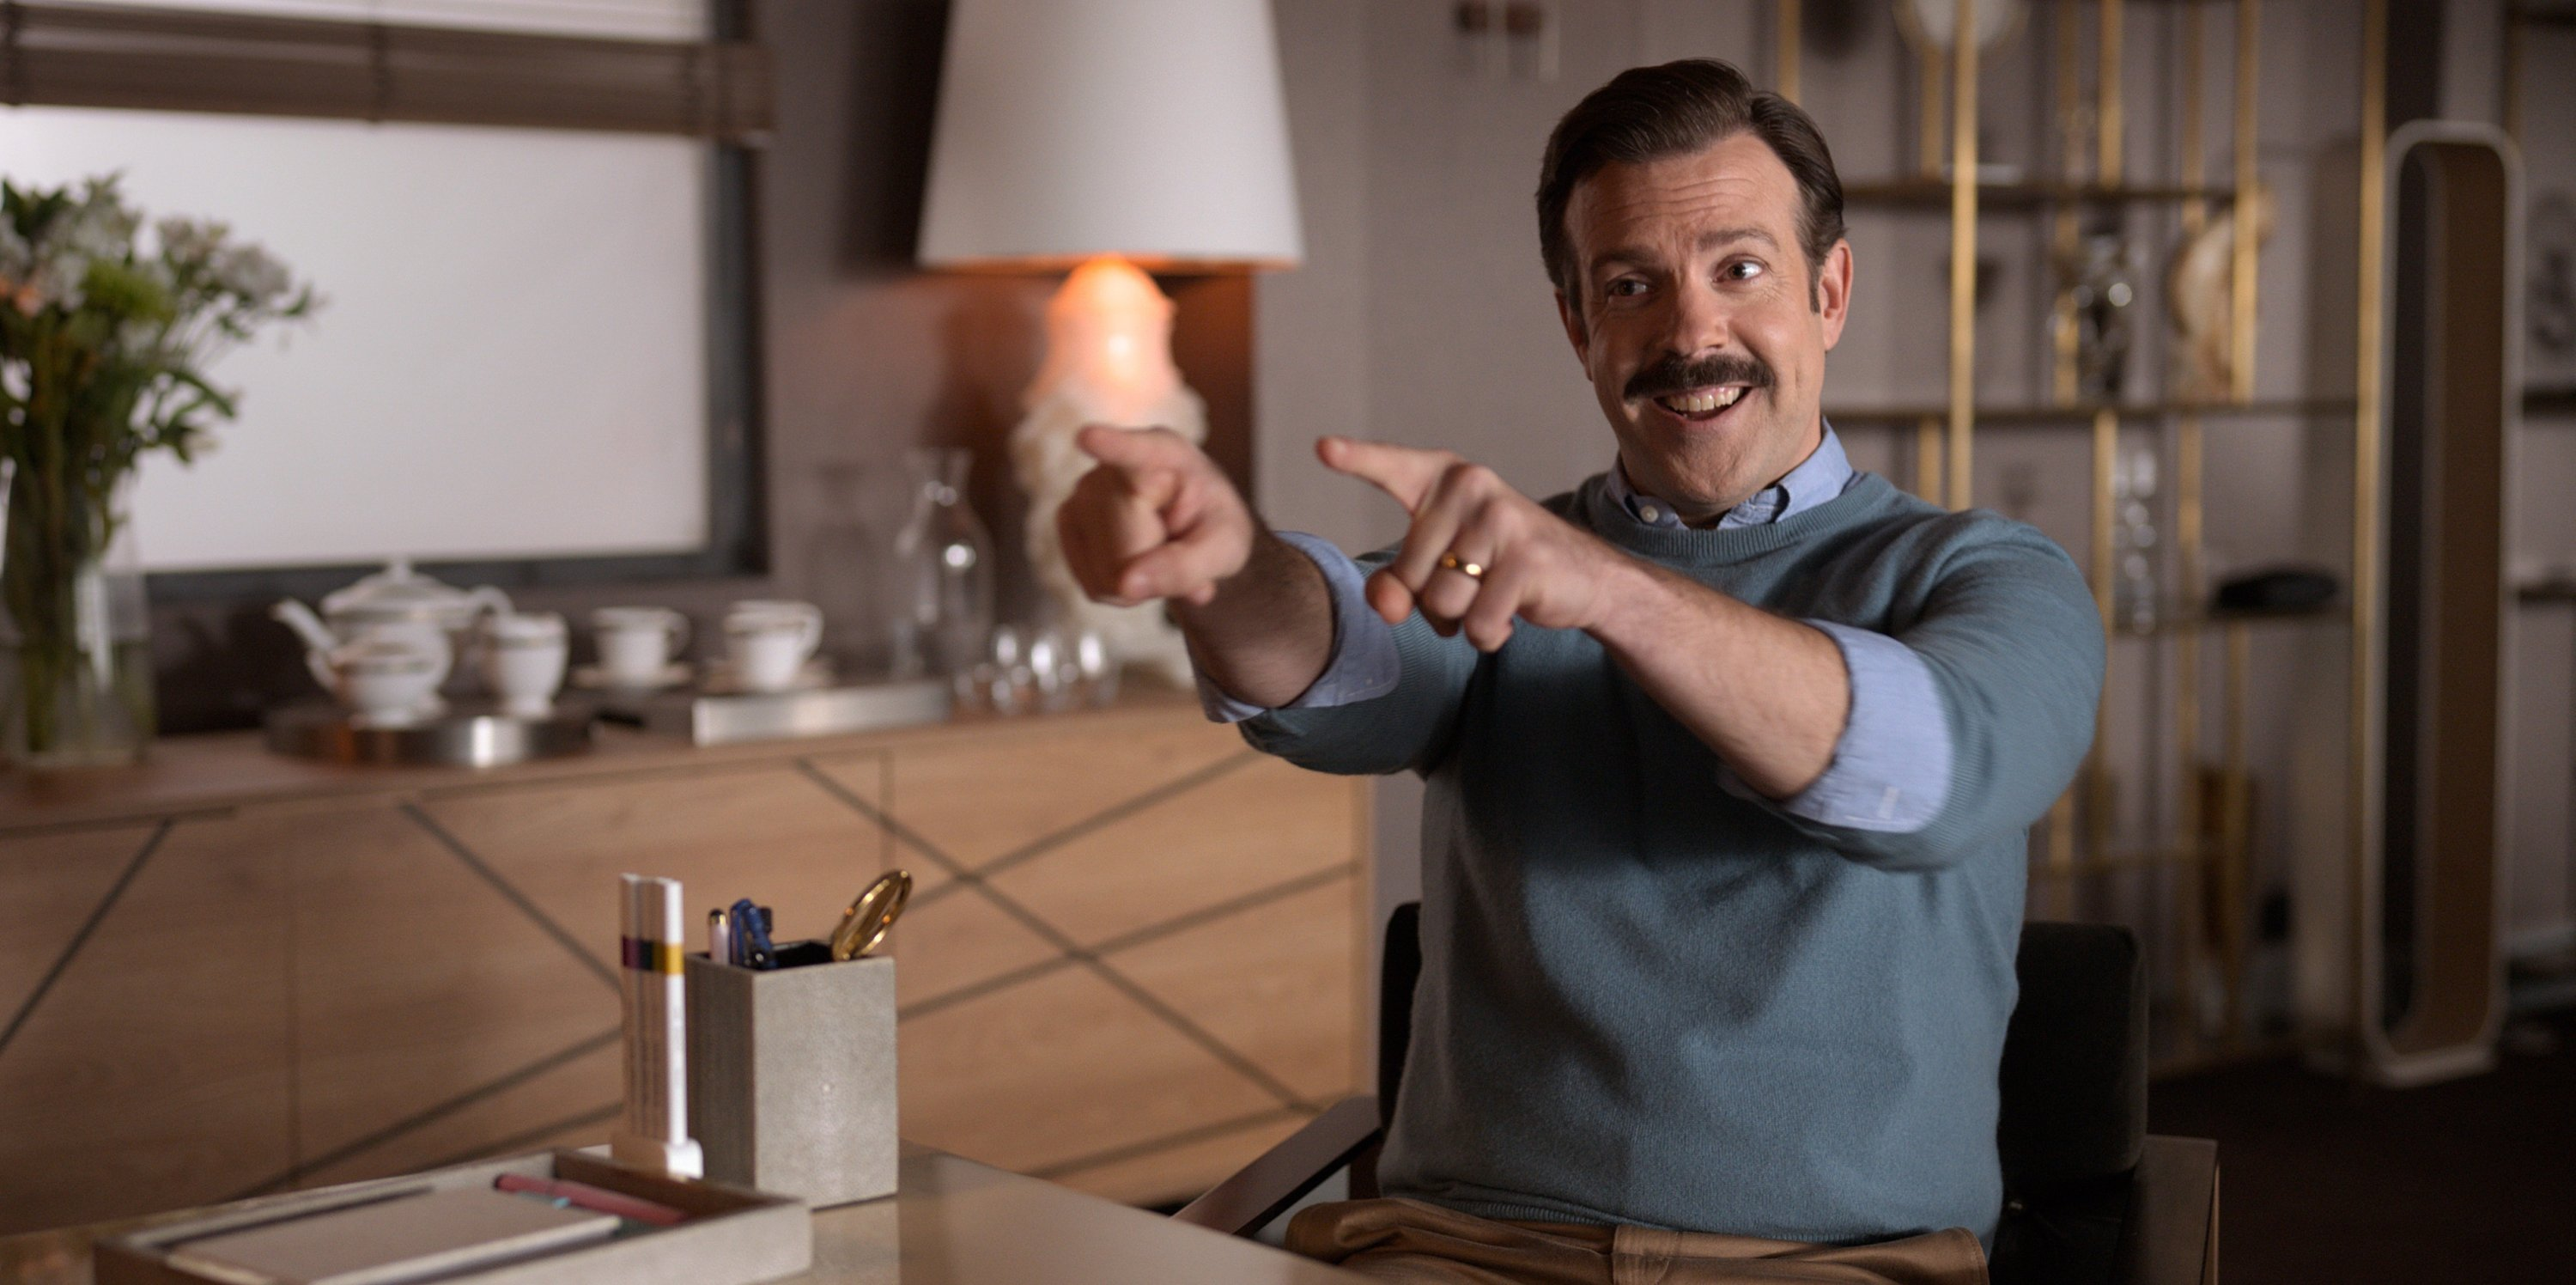 Jason Sudeikis, as Ted Lasso, points his fingers as he smiles, in a scene from the series 'Ted Lasso.' (Apple TV+ via AP)